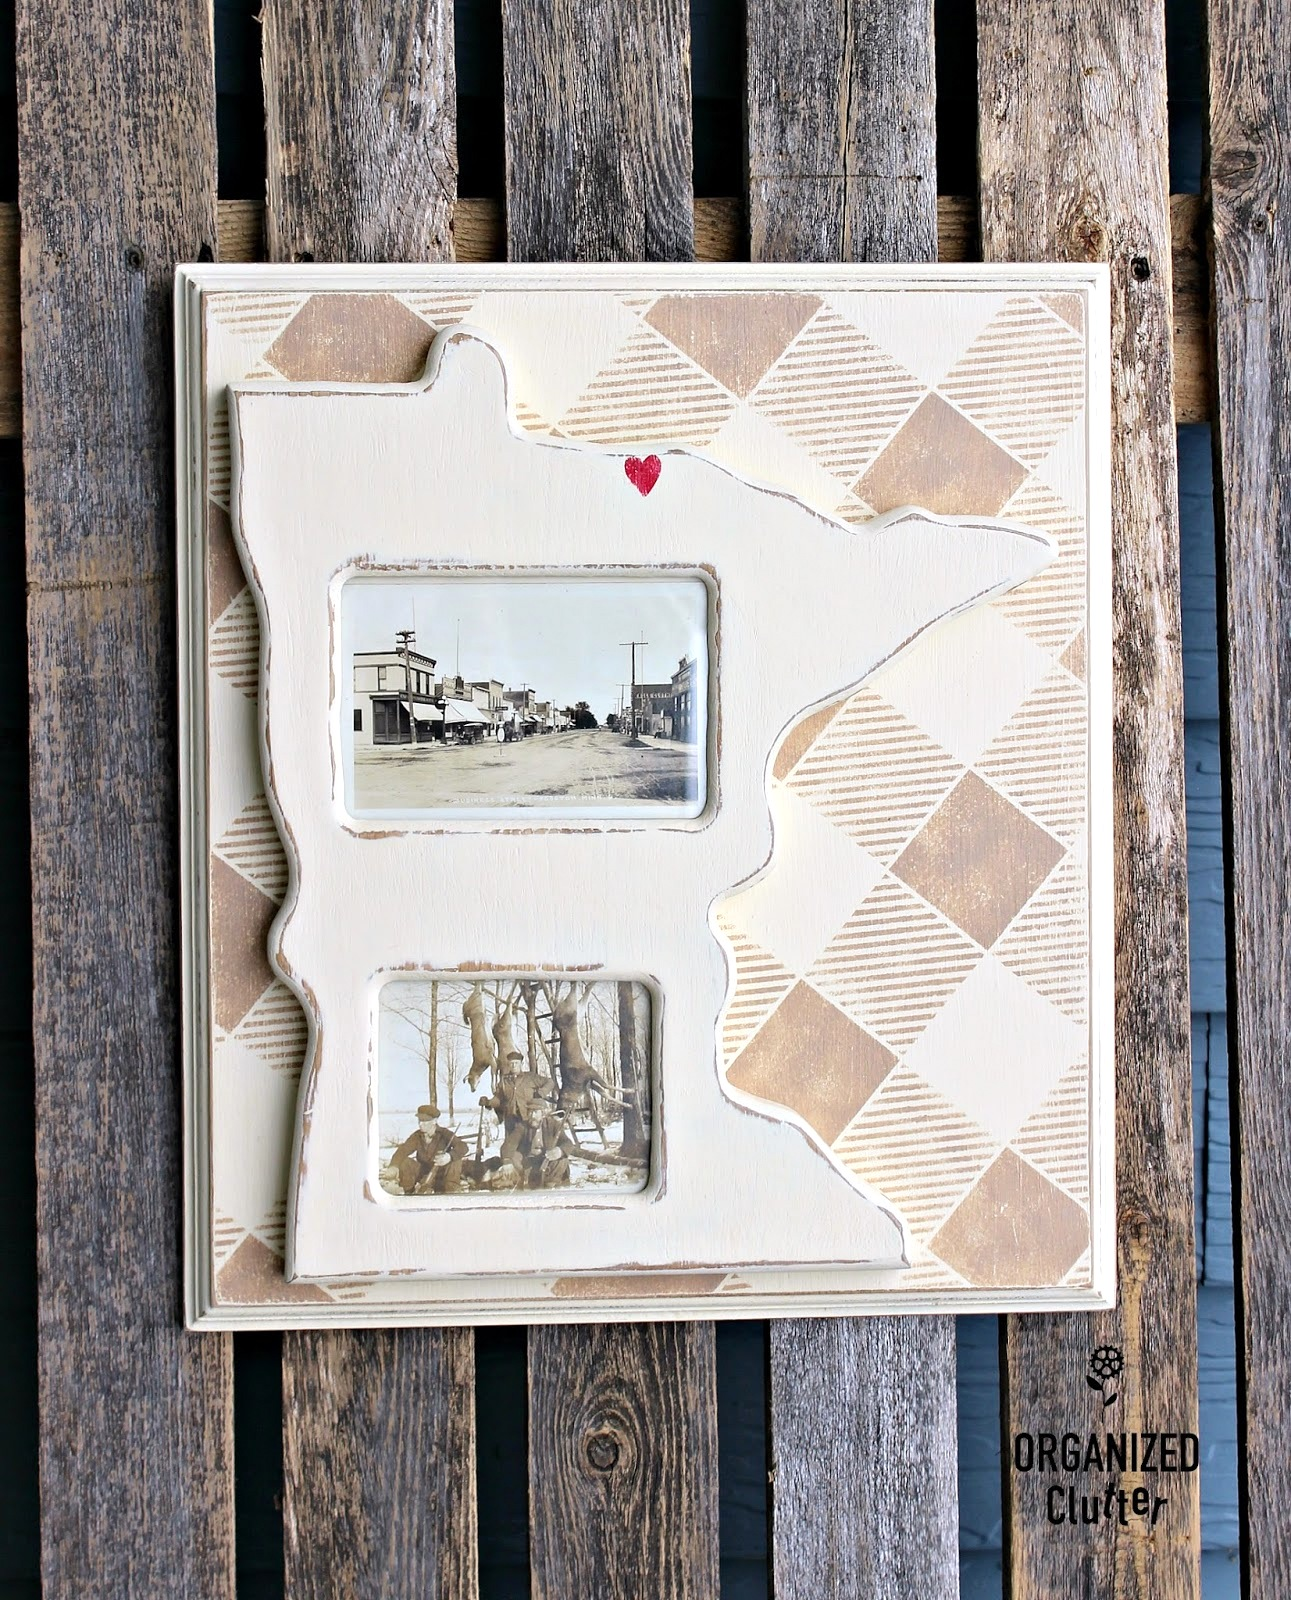 Buffalo Check map picture frame by Organized Clutter, featured on Funky Junk Interiors